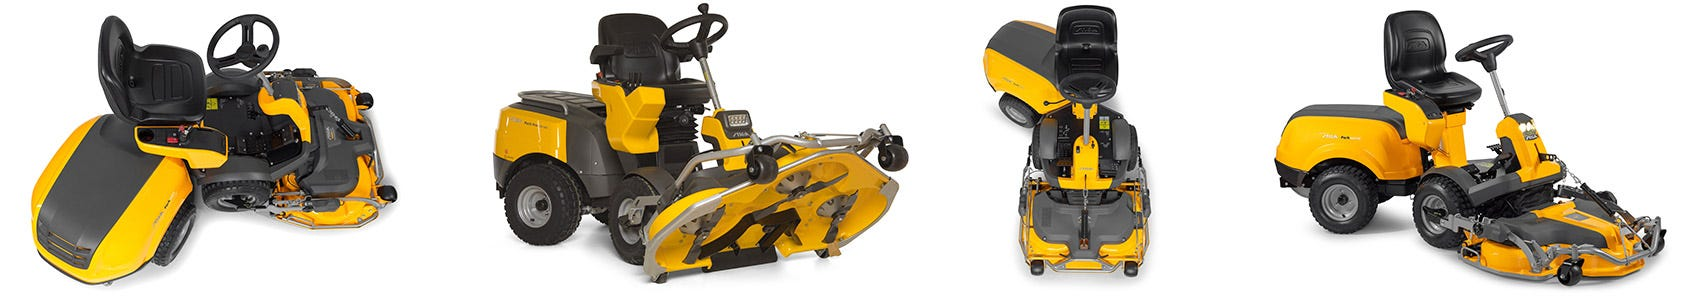 STIGA front mowers are powerful machines, specific for mulching cut